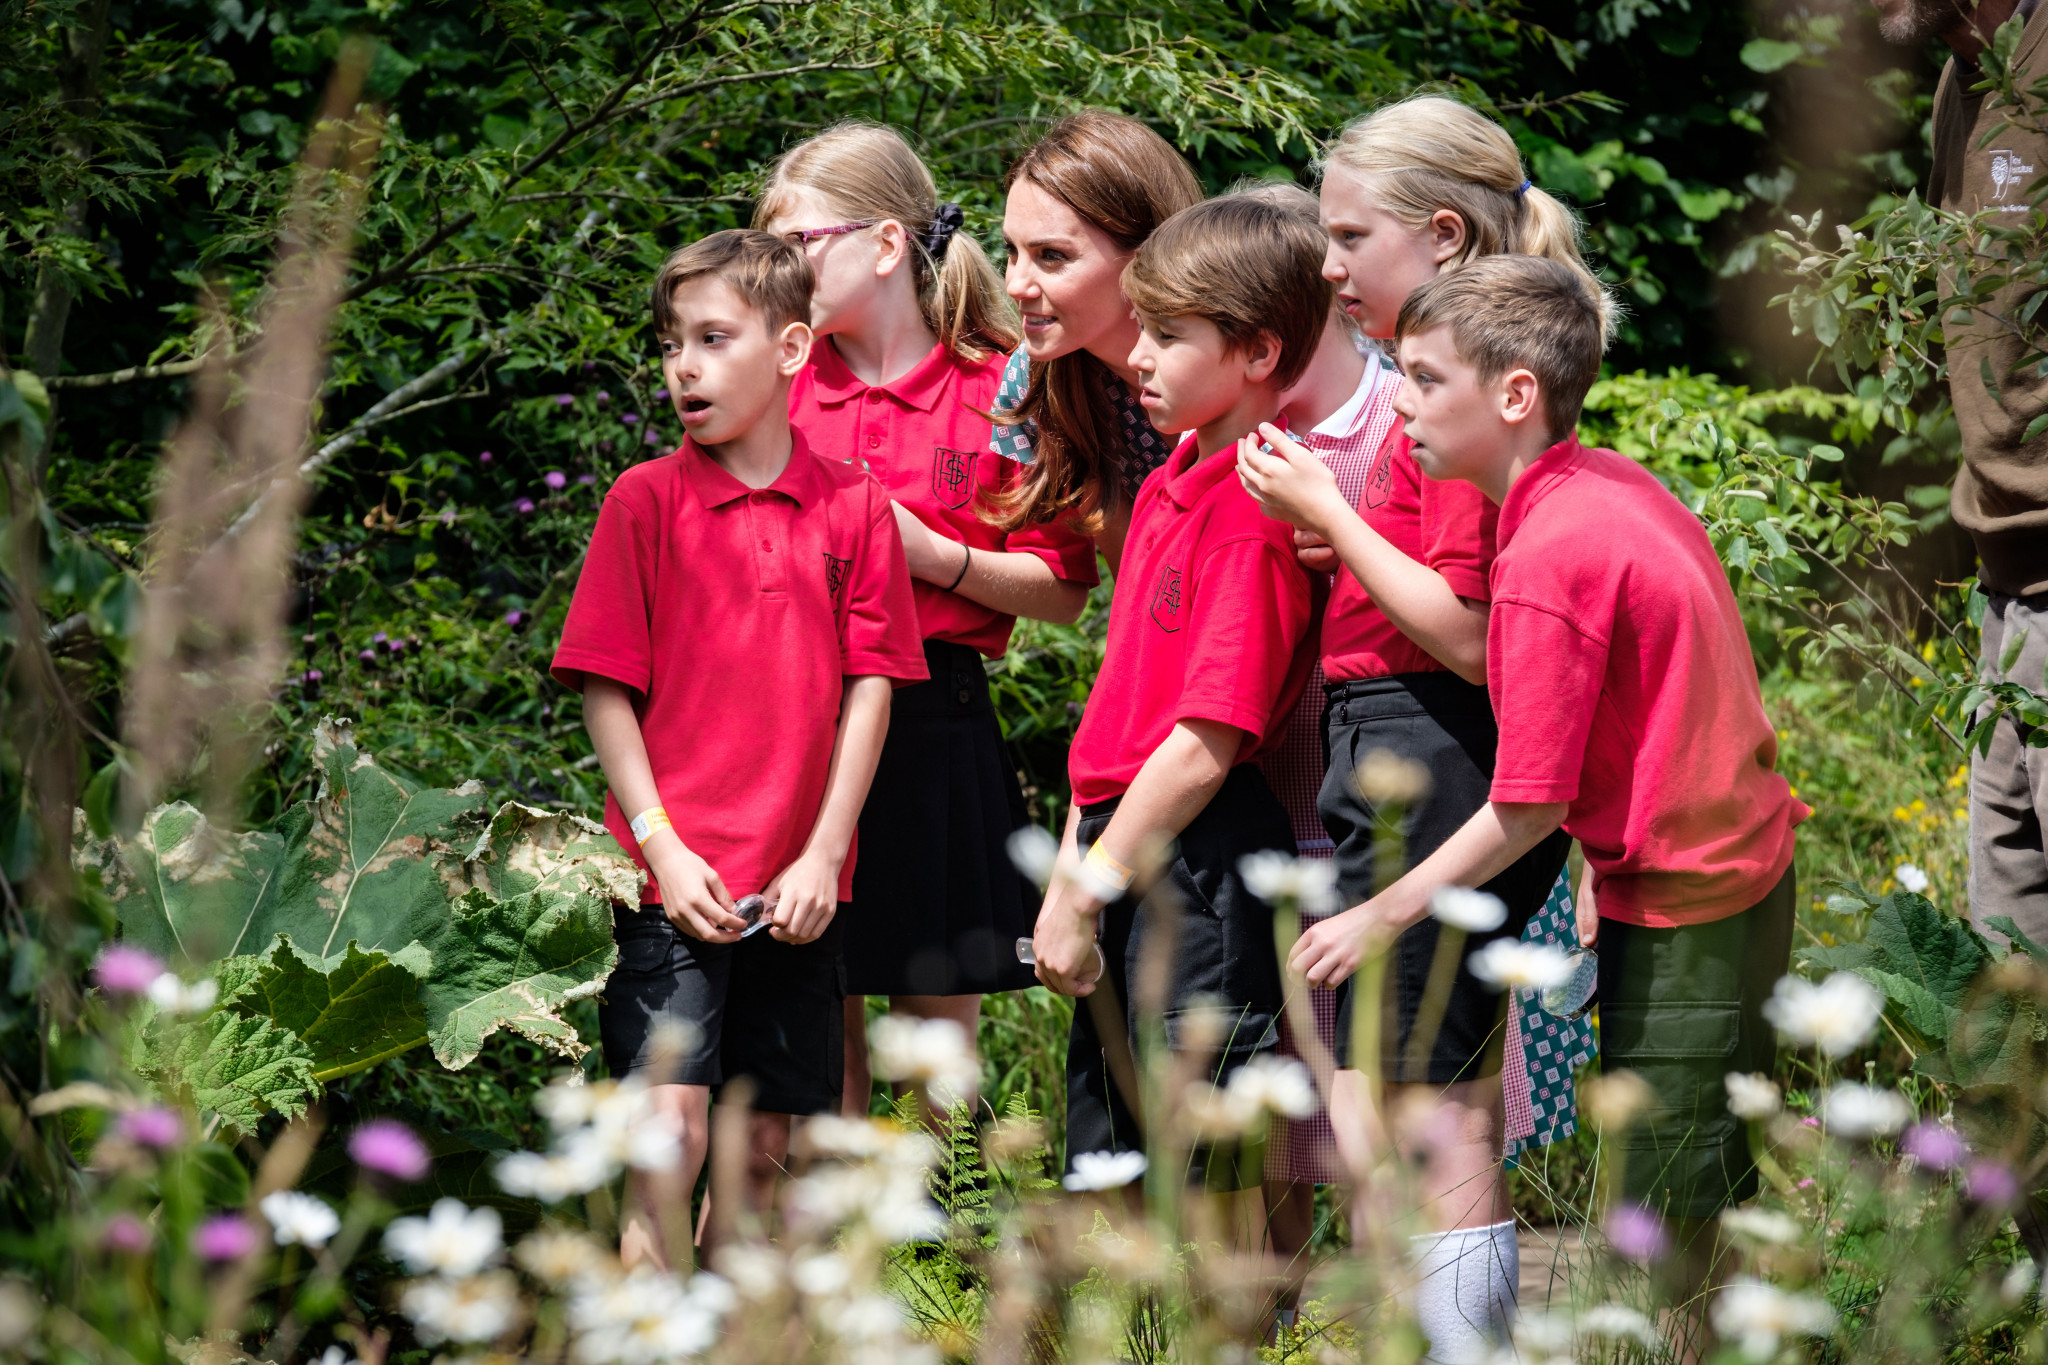 A photo of The Duchess of Cambridge and children